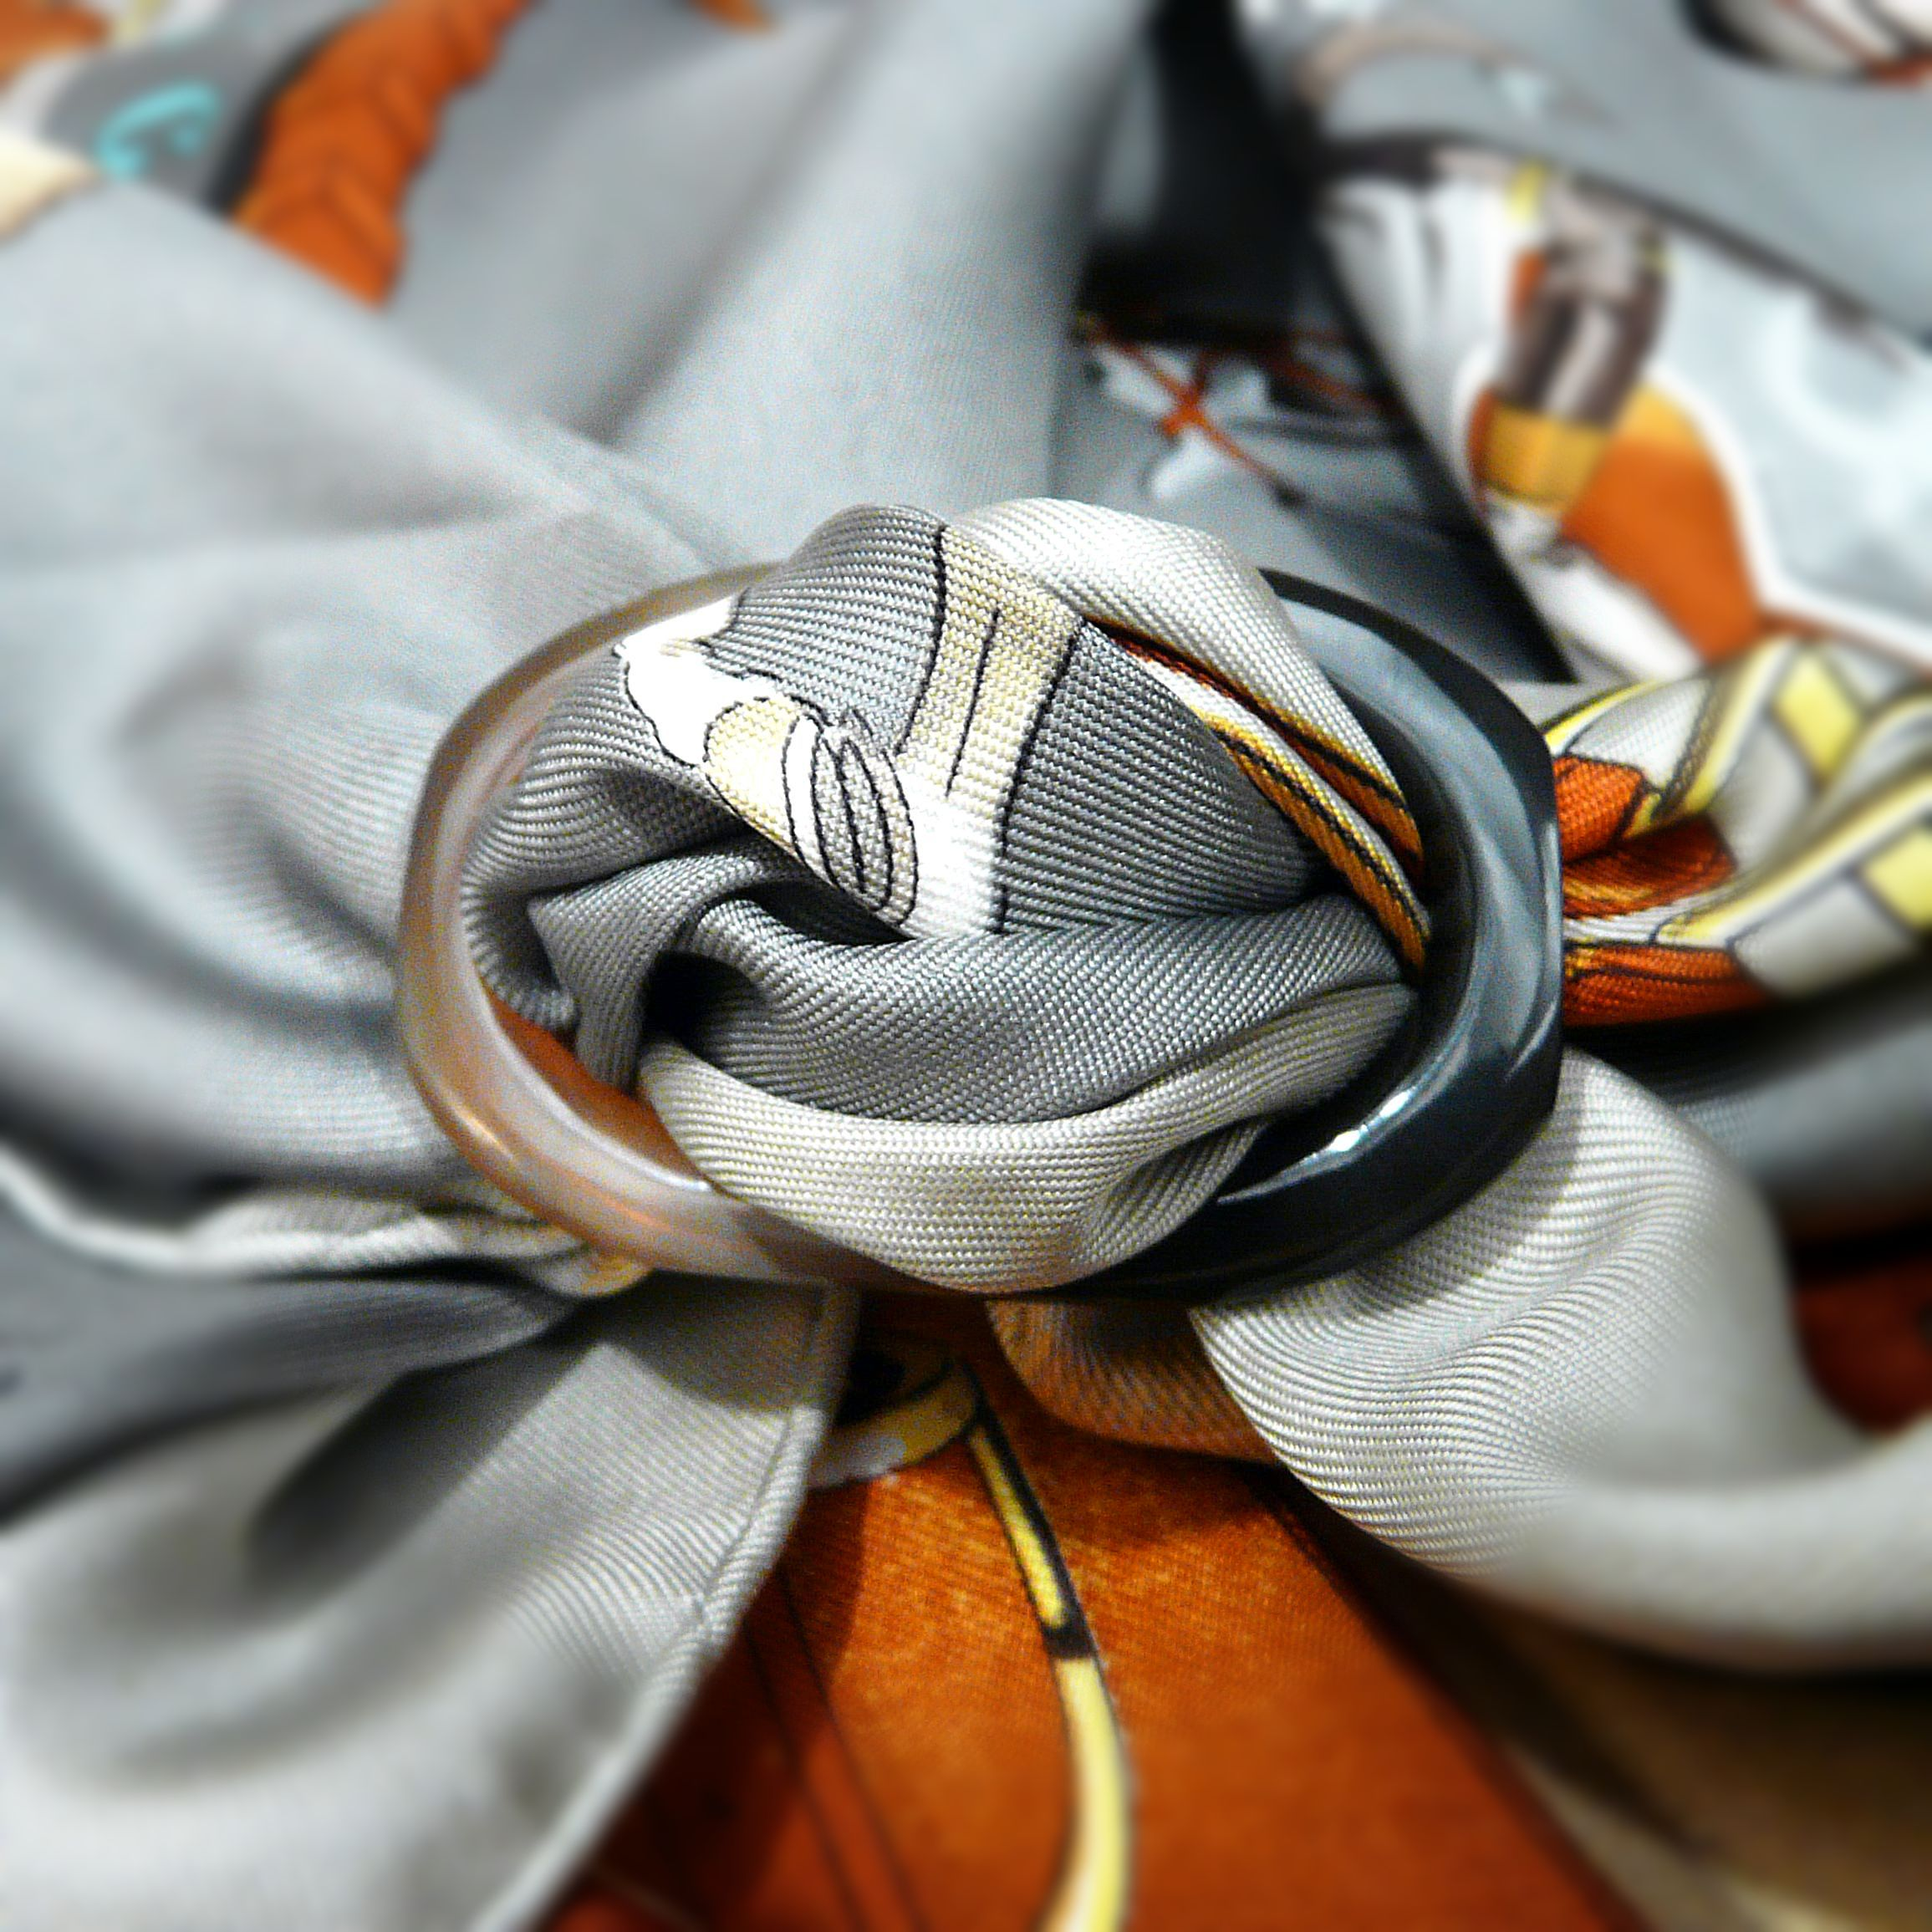 Grand Anneau Horn Scarf Ring with Jumping Hermes Silk Scarf